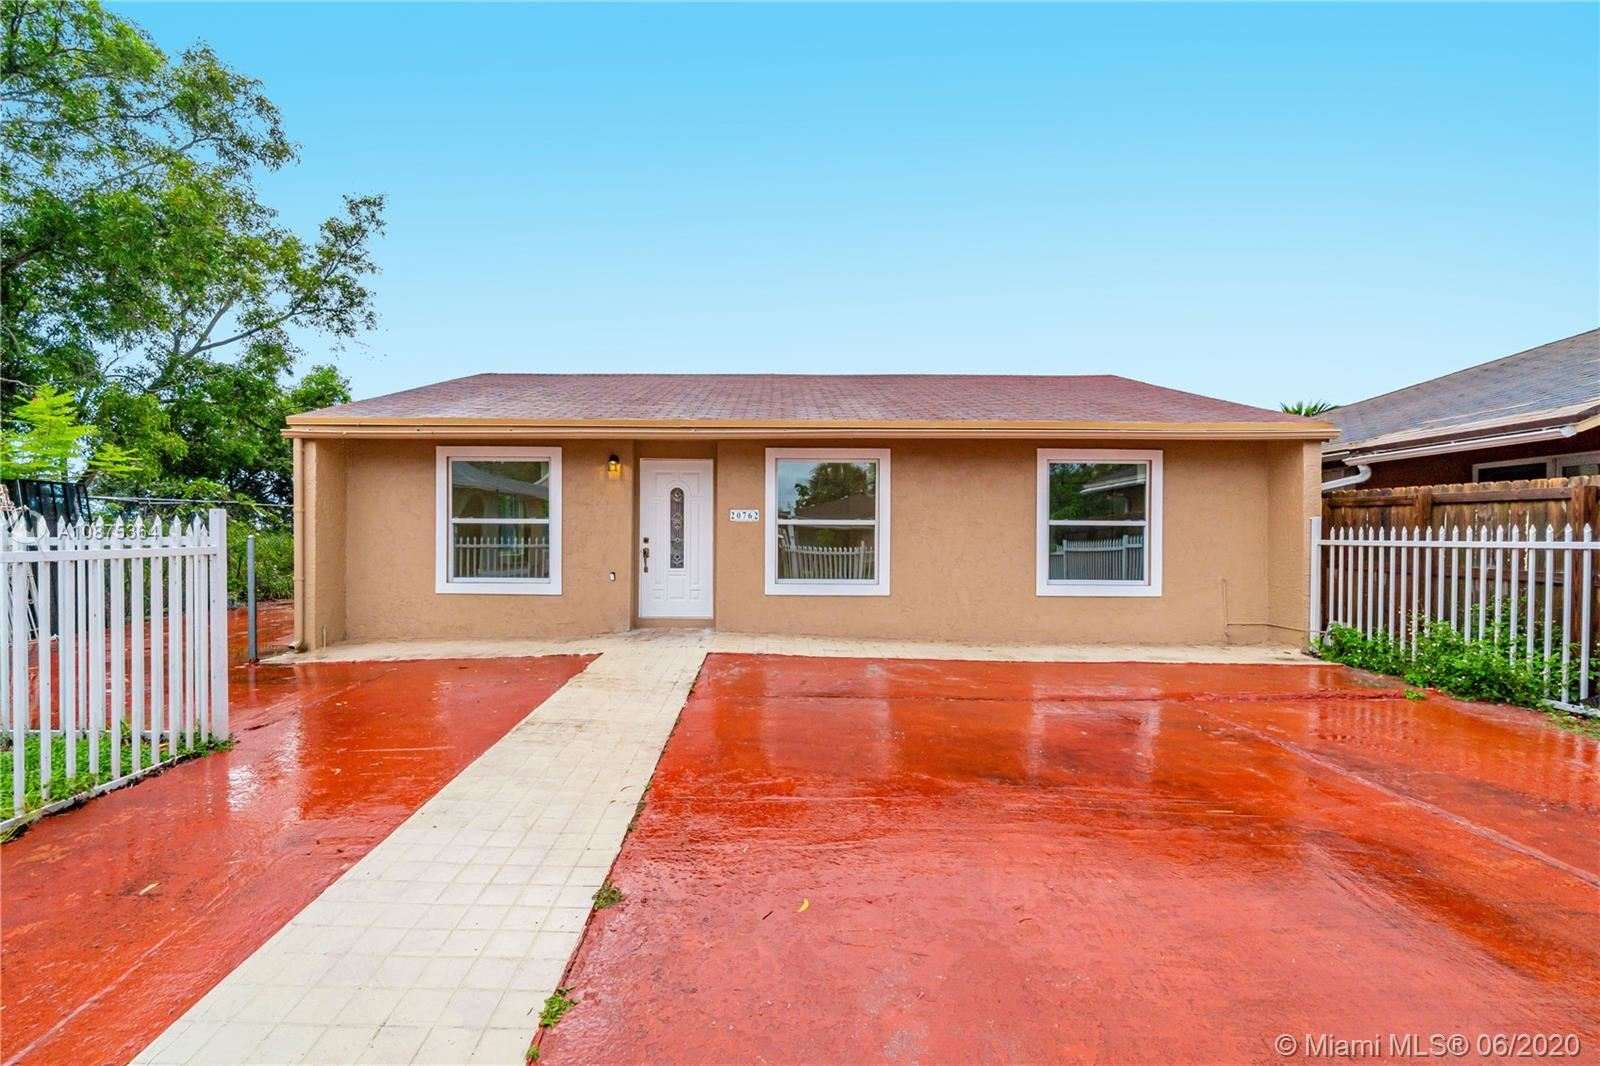 20762 NW 41st Ave Rd, Miami Gardens, FL 33055 - #: A10875364